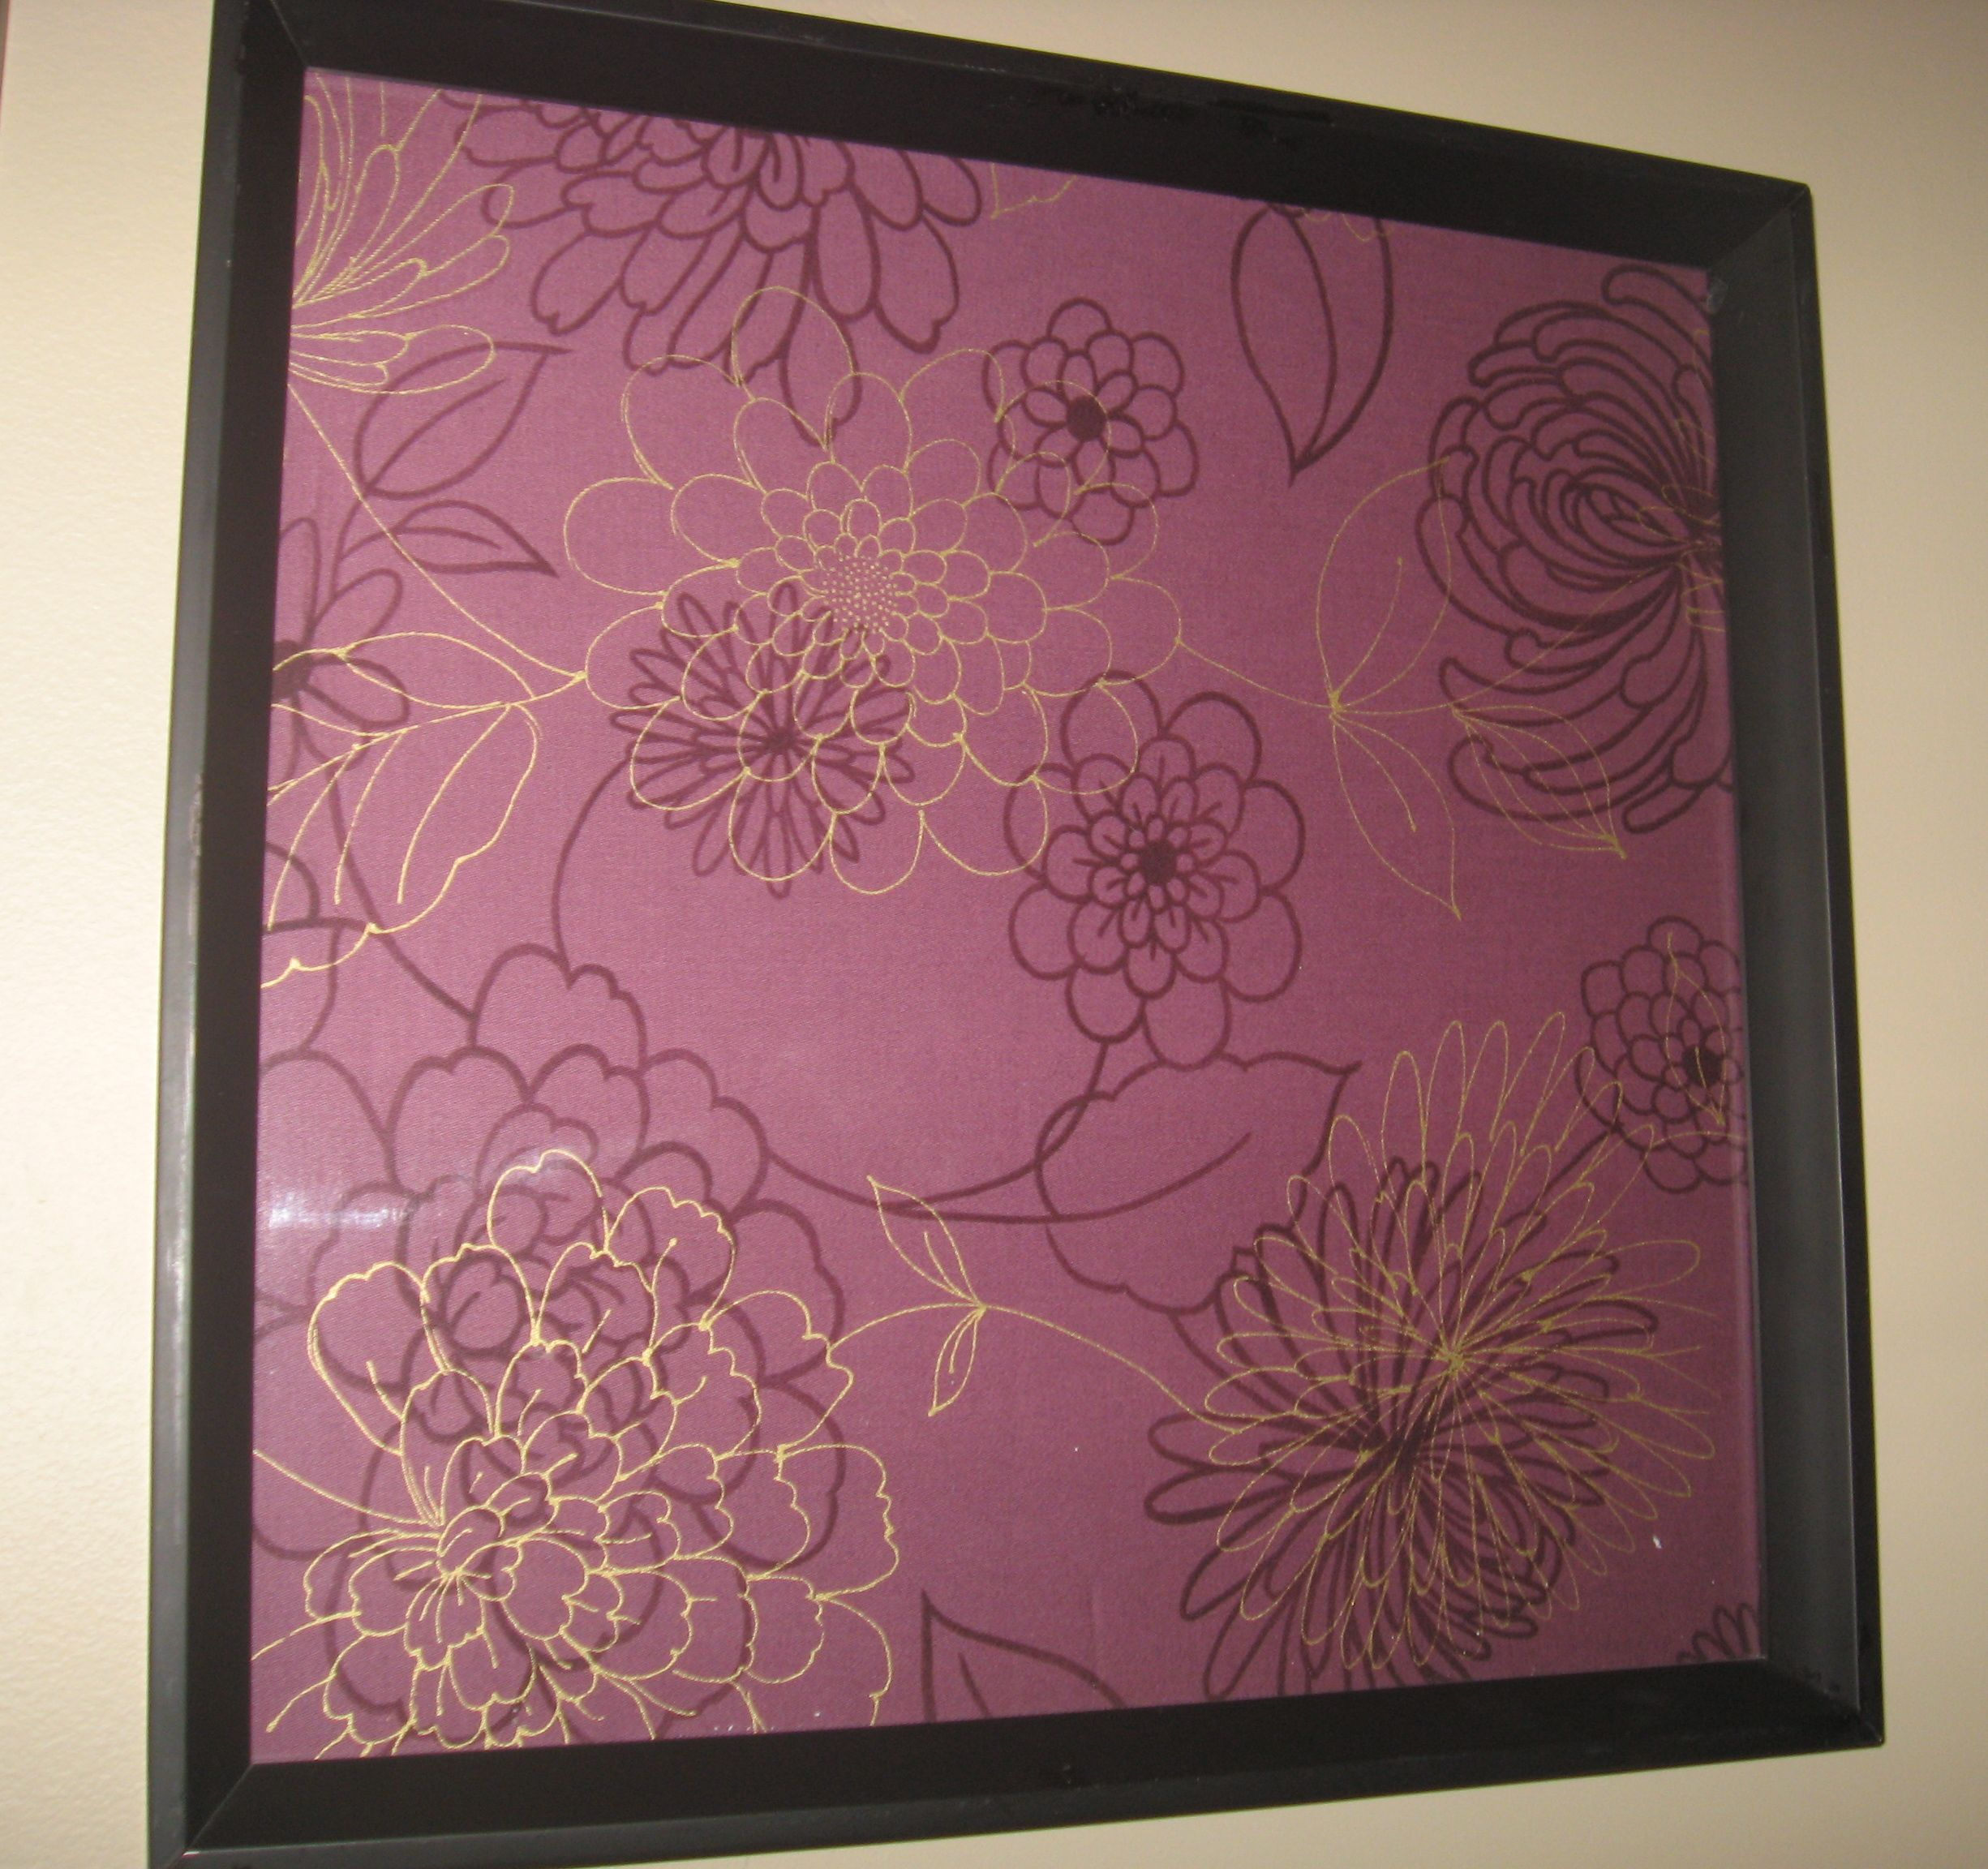 Fabric! In a frame!